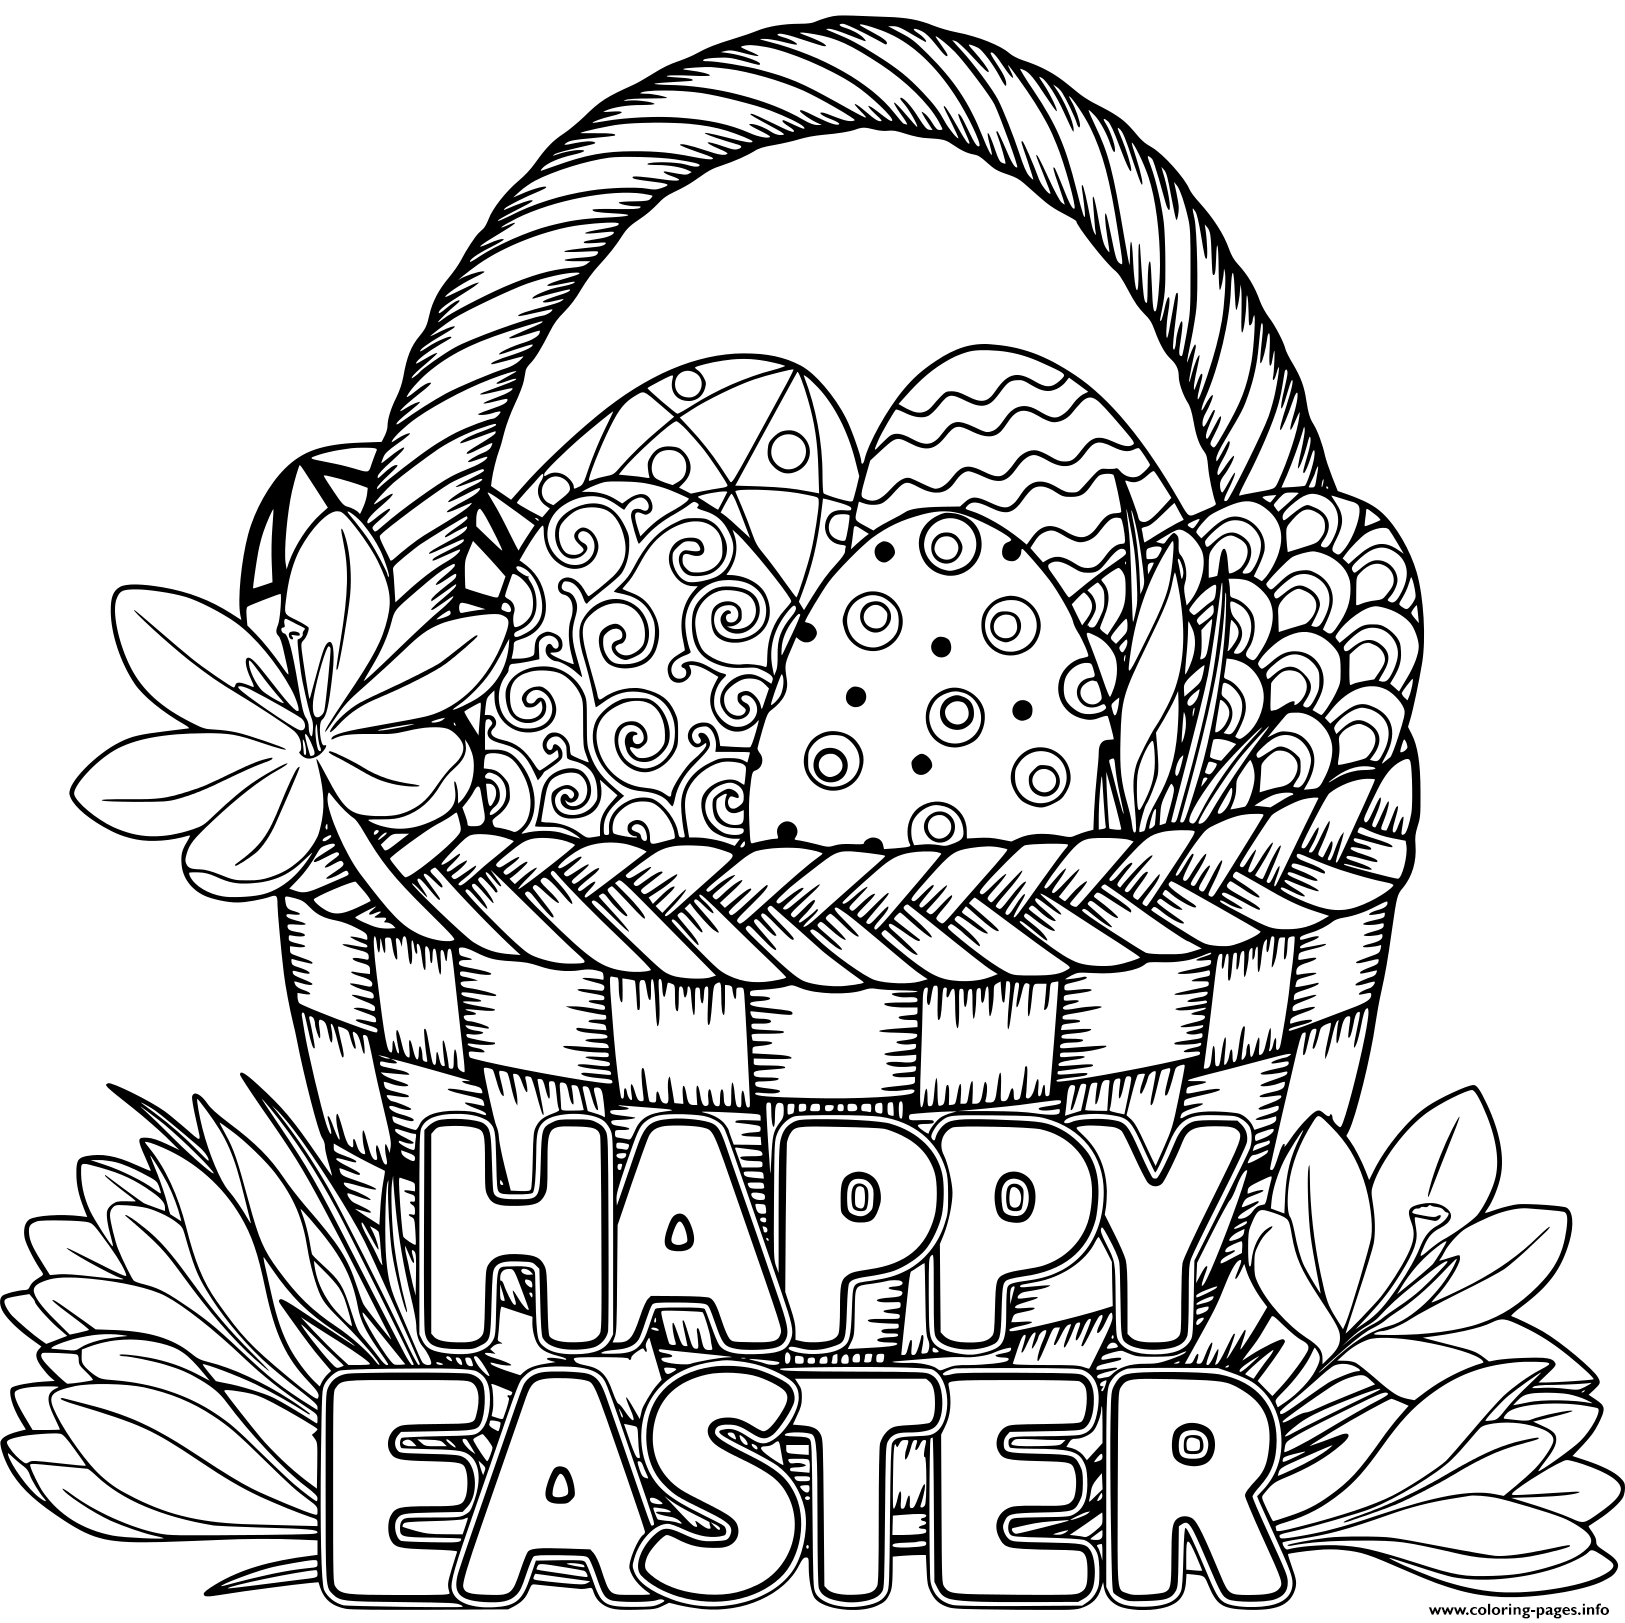 easter colouring pages printable for adults basket egg adult happy easter coloring pages printable for colouring pages adults printable easter